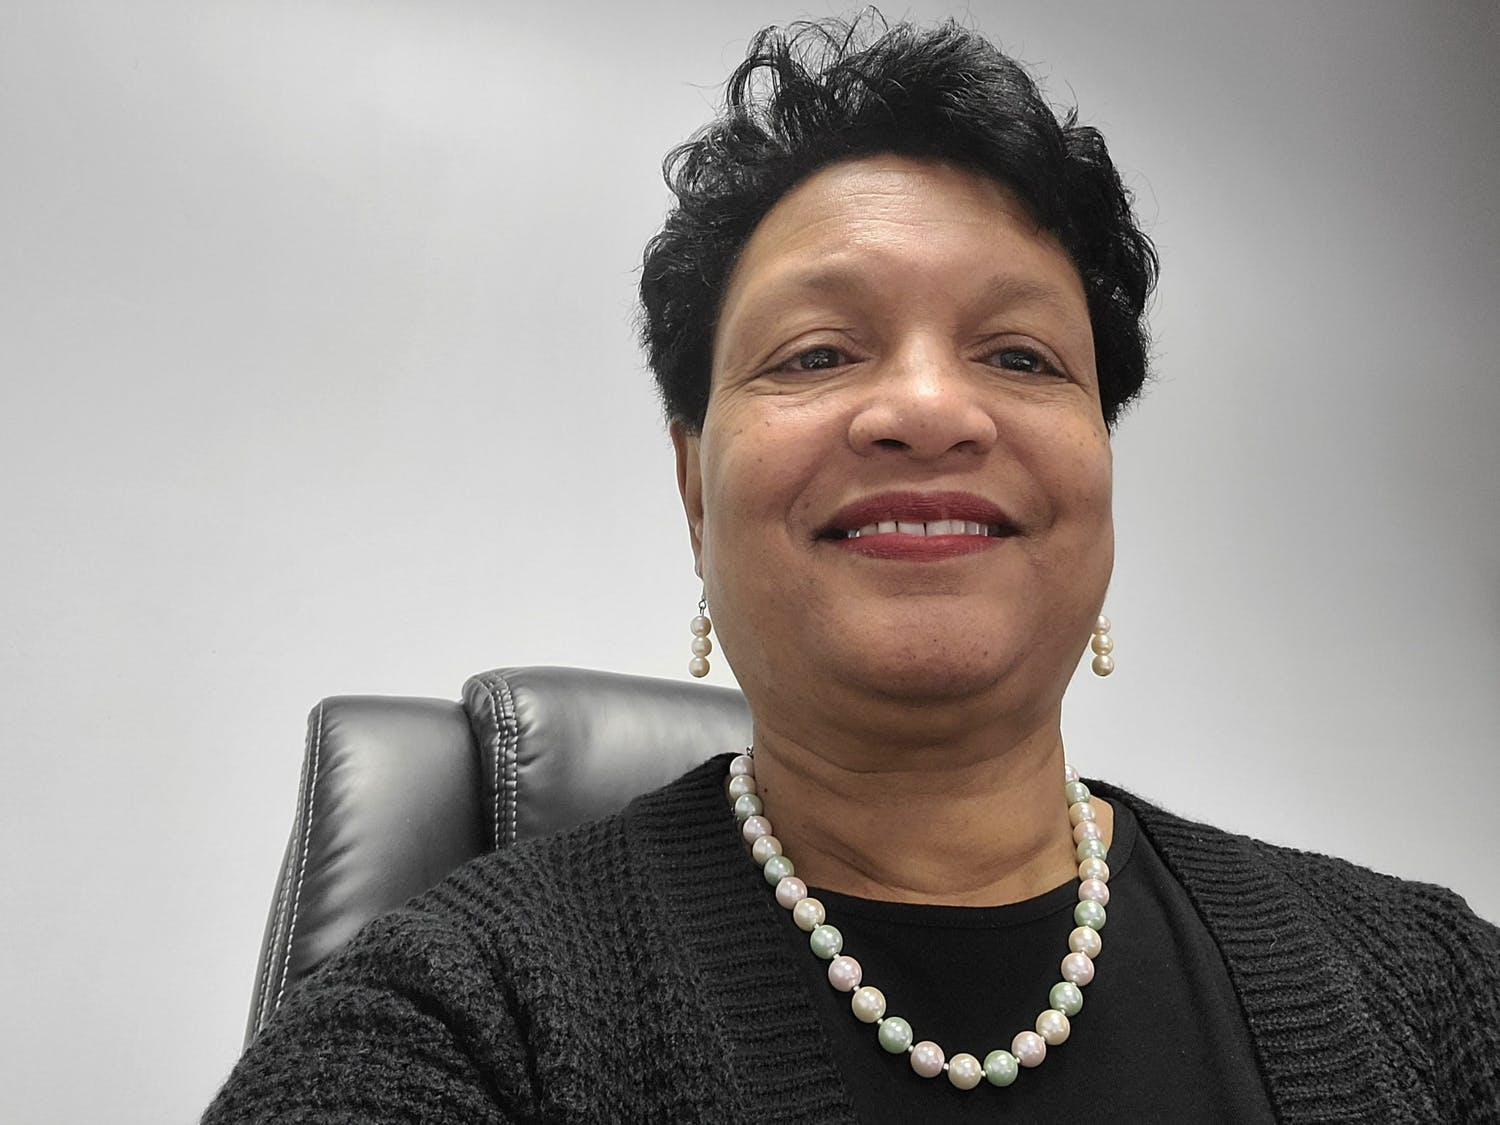 Exective Director for EmPOWERment Inc. Delores Bailey is the 2021 Chapel Hill-Carrboro NAACP Dr. Martin Luther King, Jr. Community Service Award recipient. Photo courtesy of Delores Bailey.